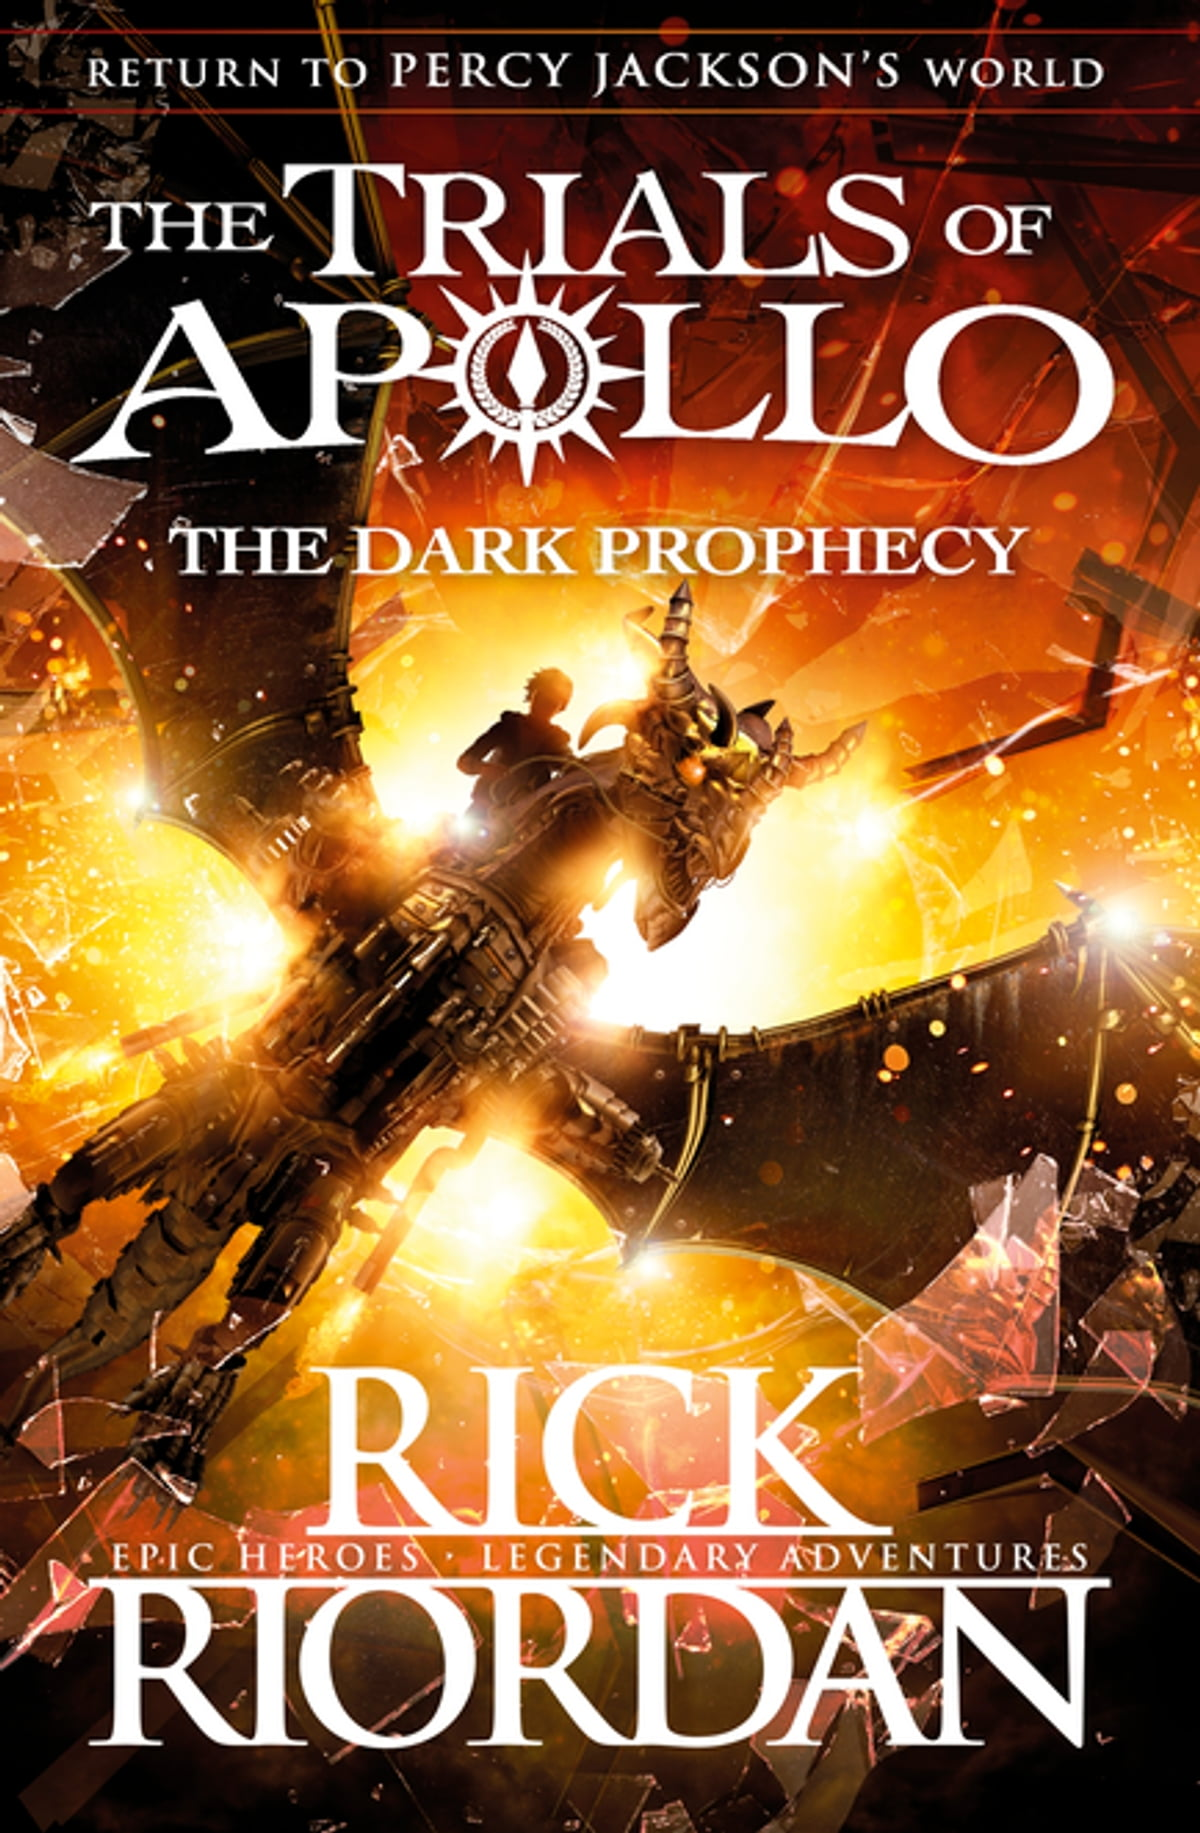 The Dark Prophecy (the Trials Of Apollo Book 2) Ebook By Rick Riordan   9780141363981  Rakuten Kobo